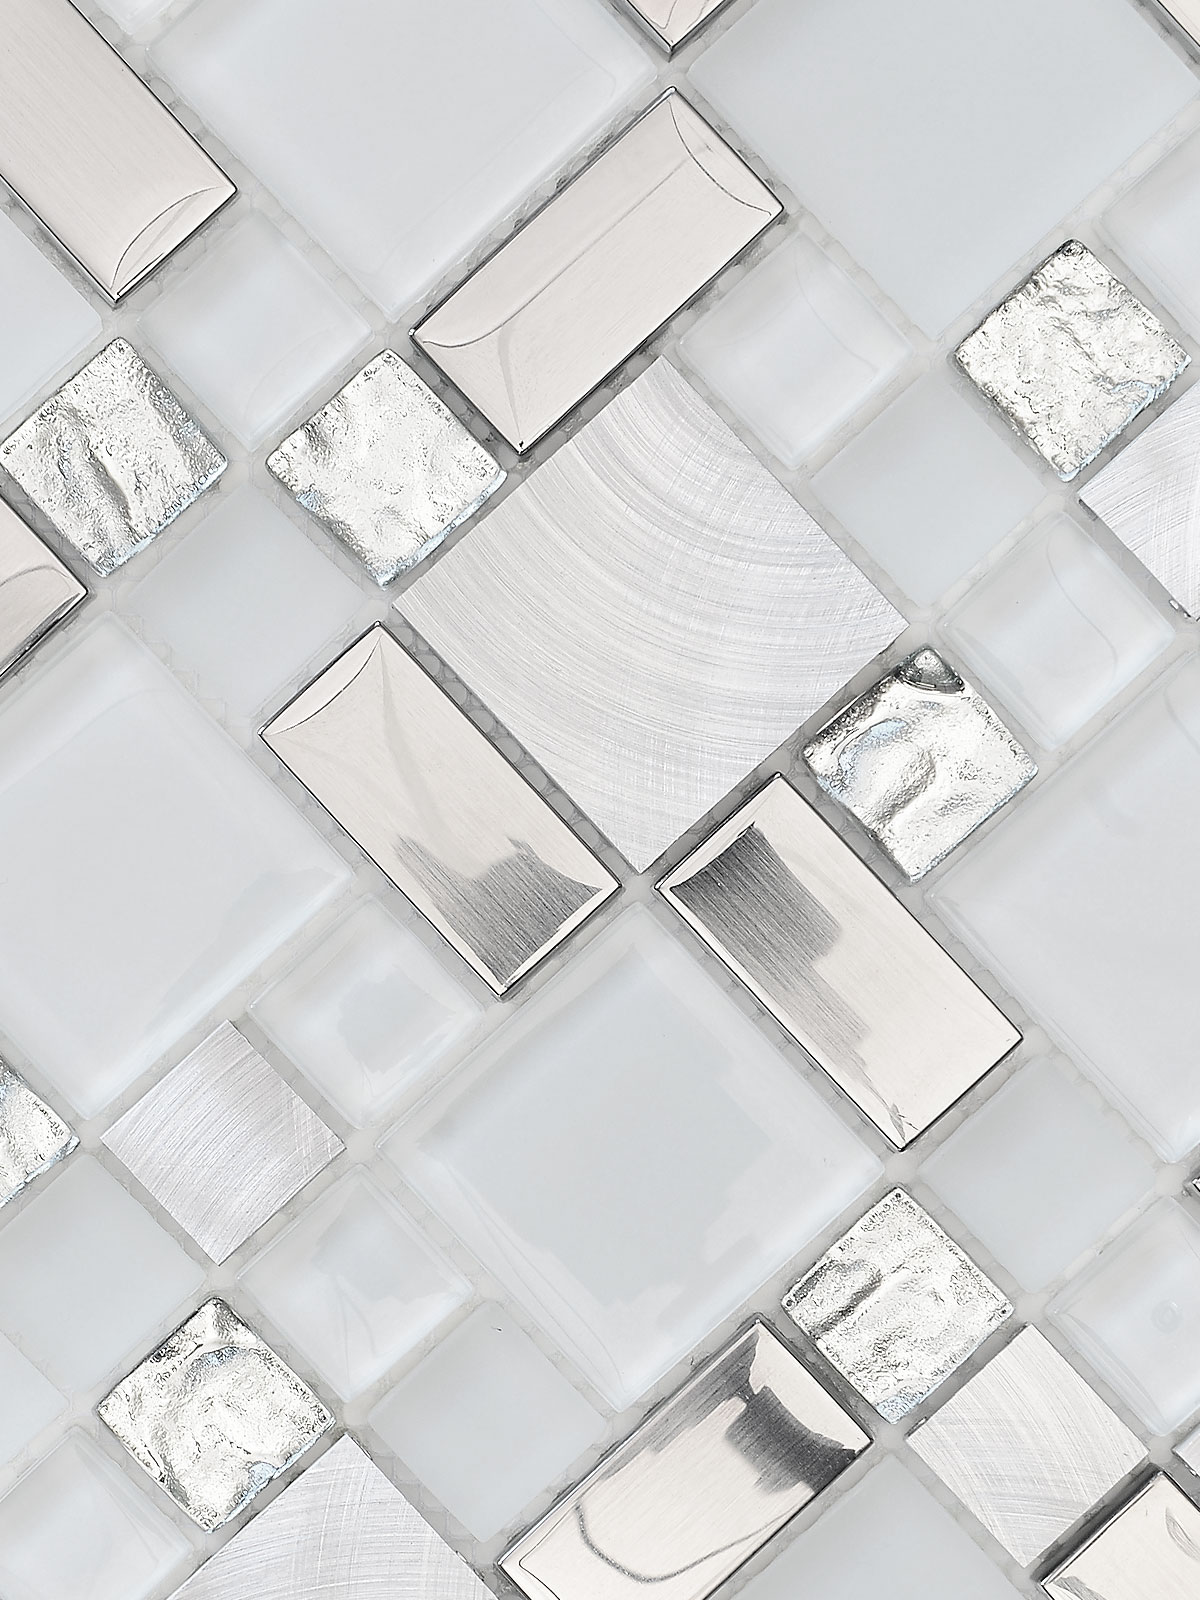 BA1138 Glass Metyal Backsplash Tile 2